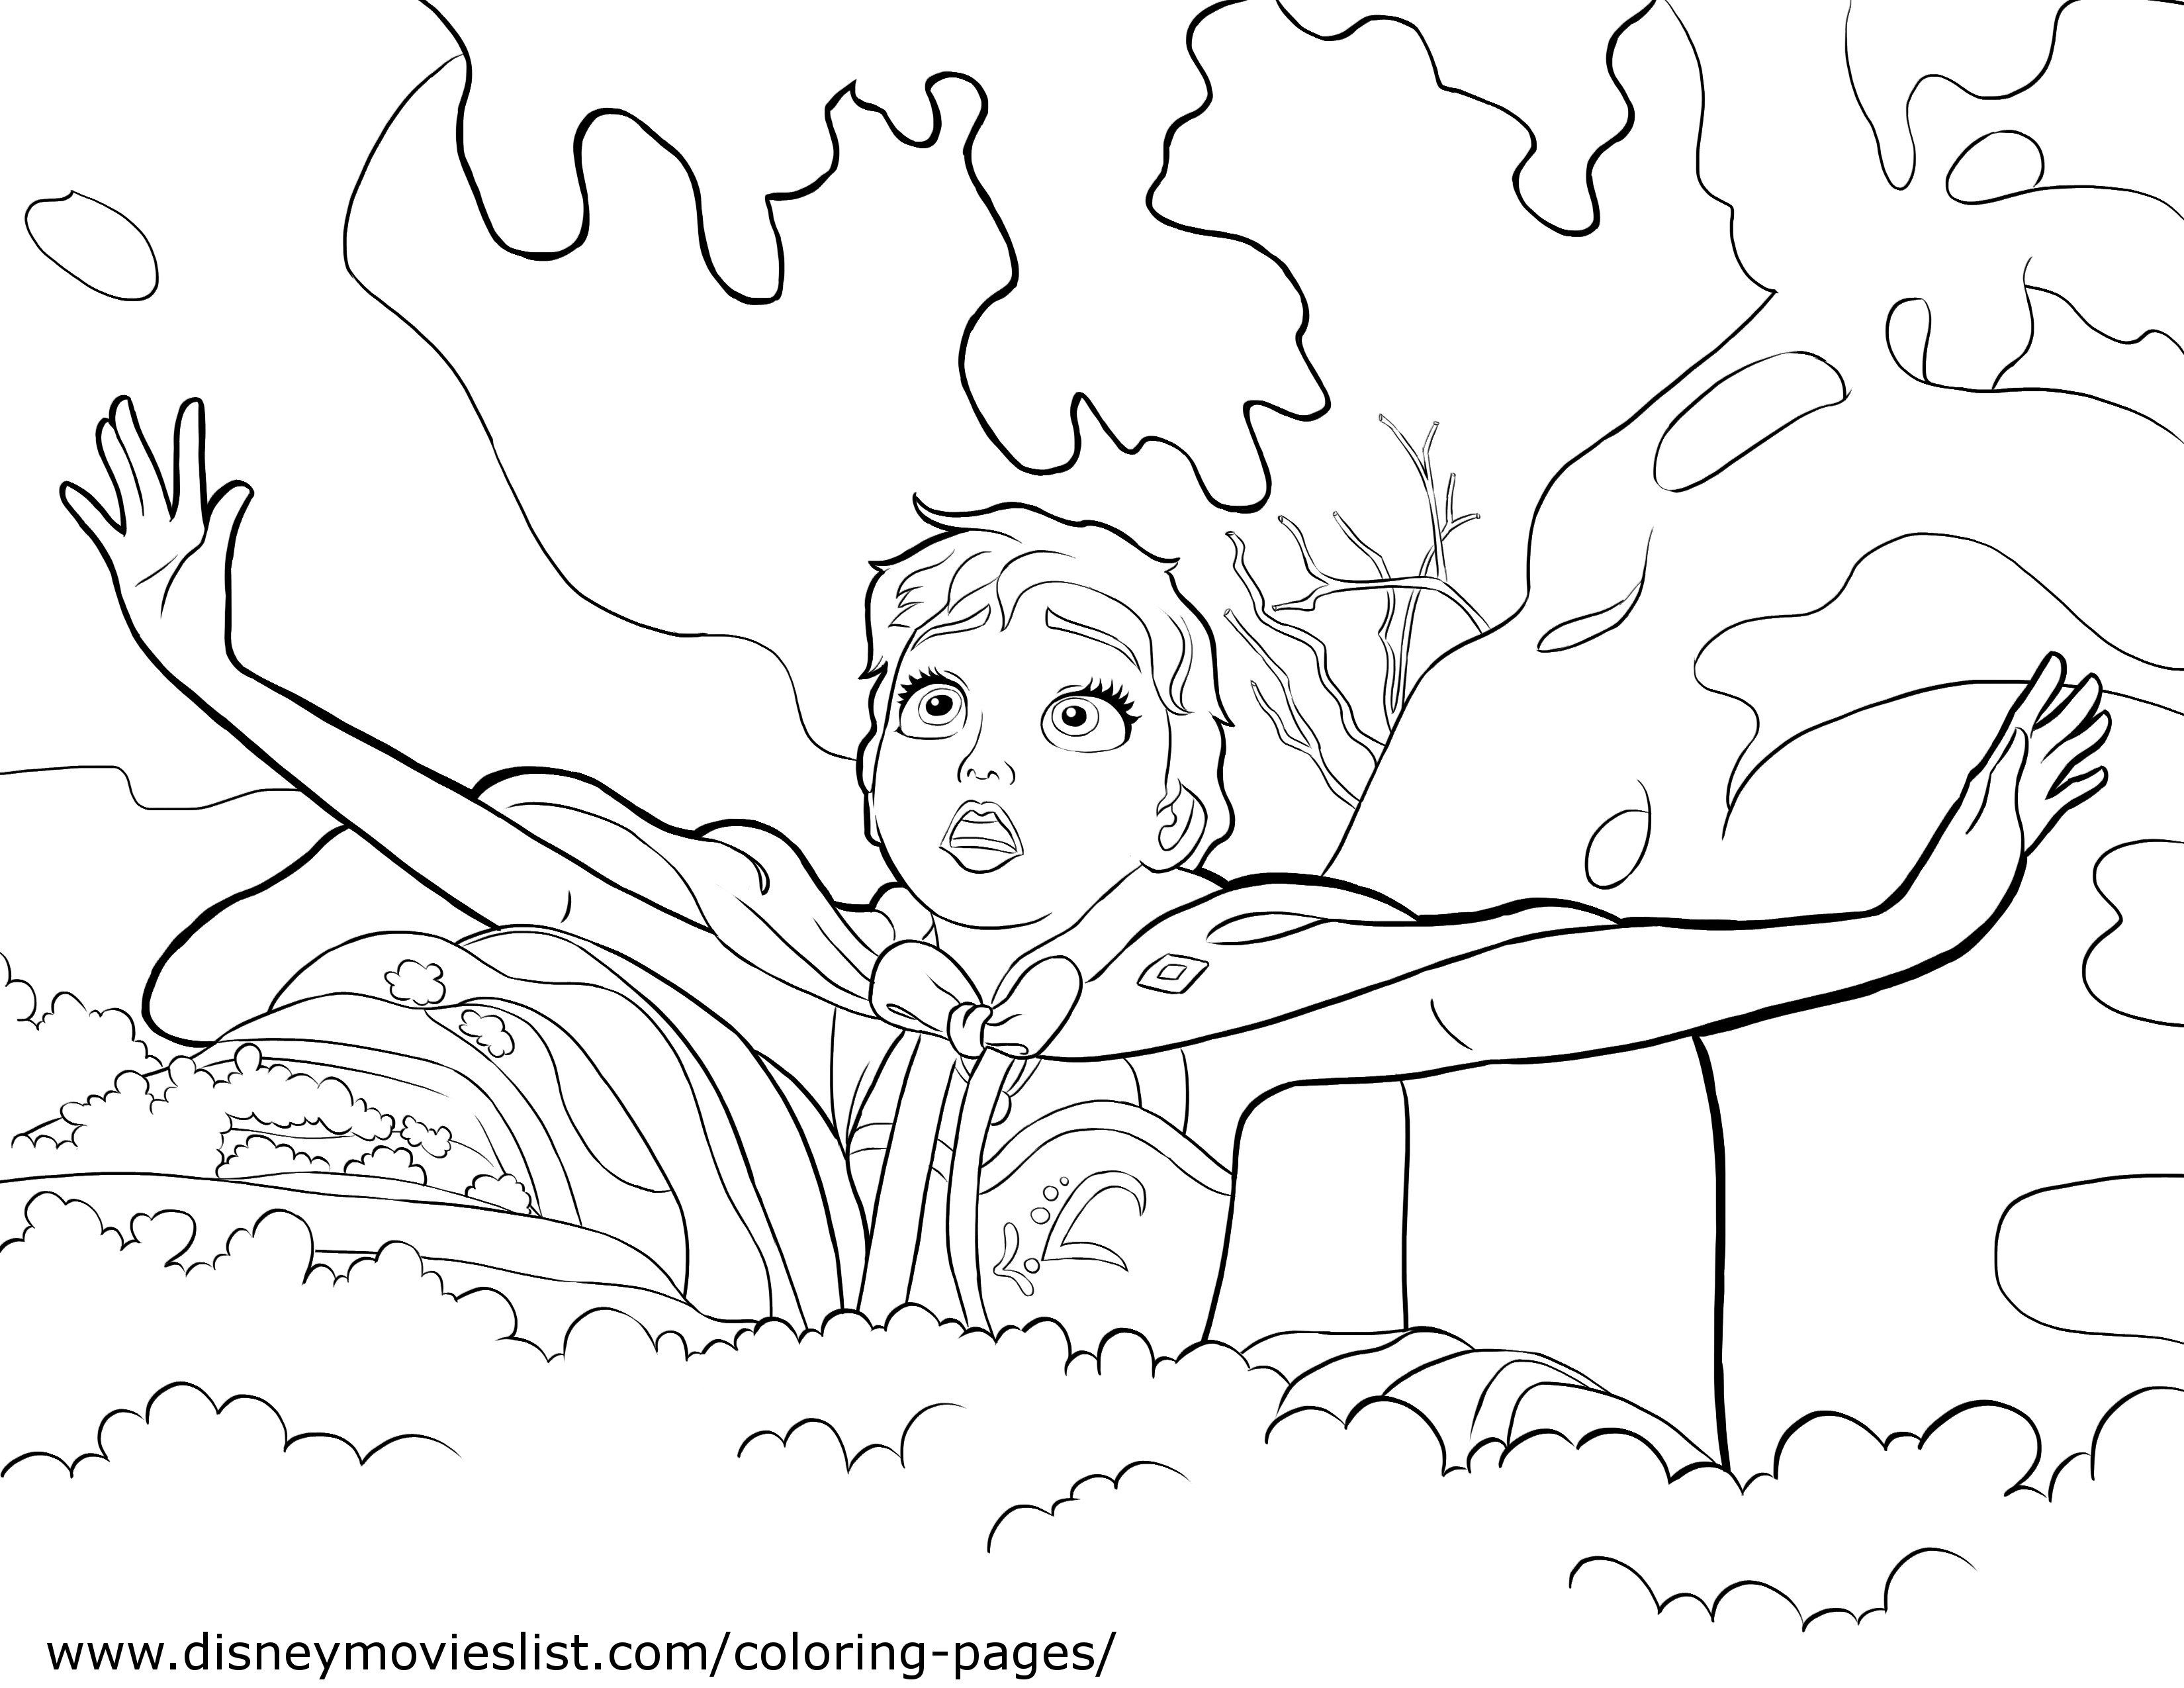 disneys frozen olaf coloring page - Disney Coloring Pages Frozen